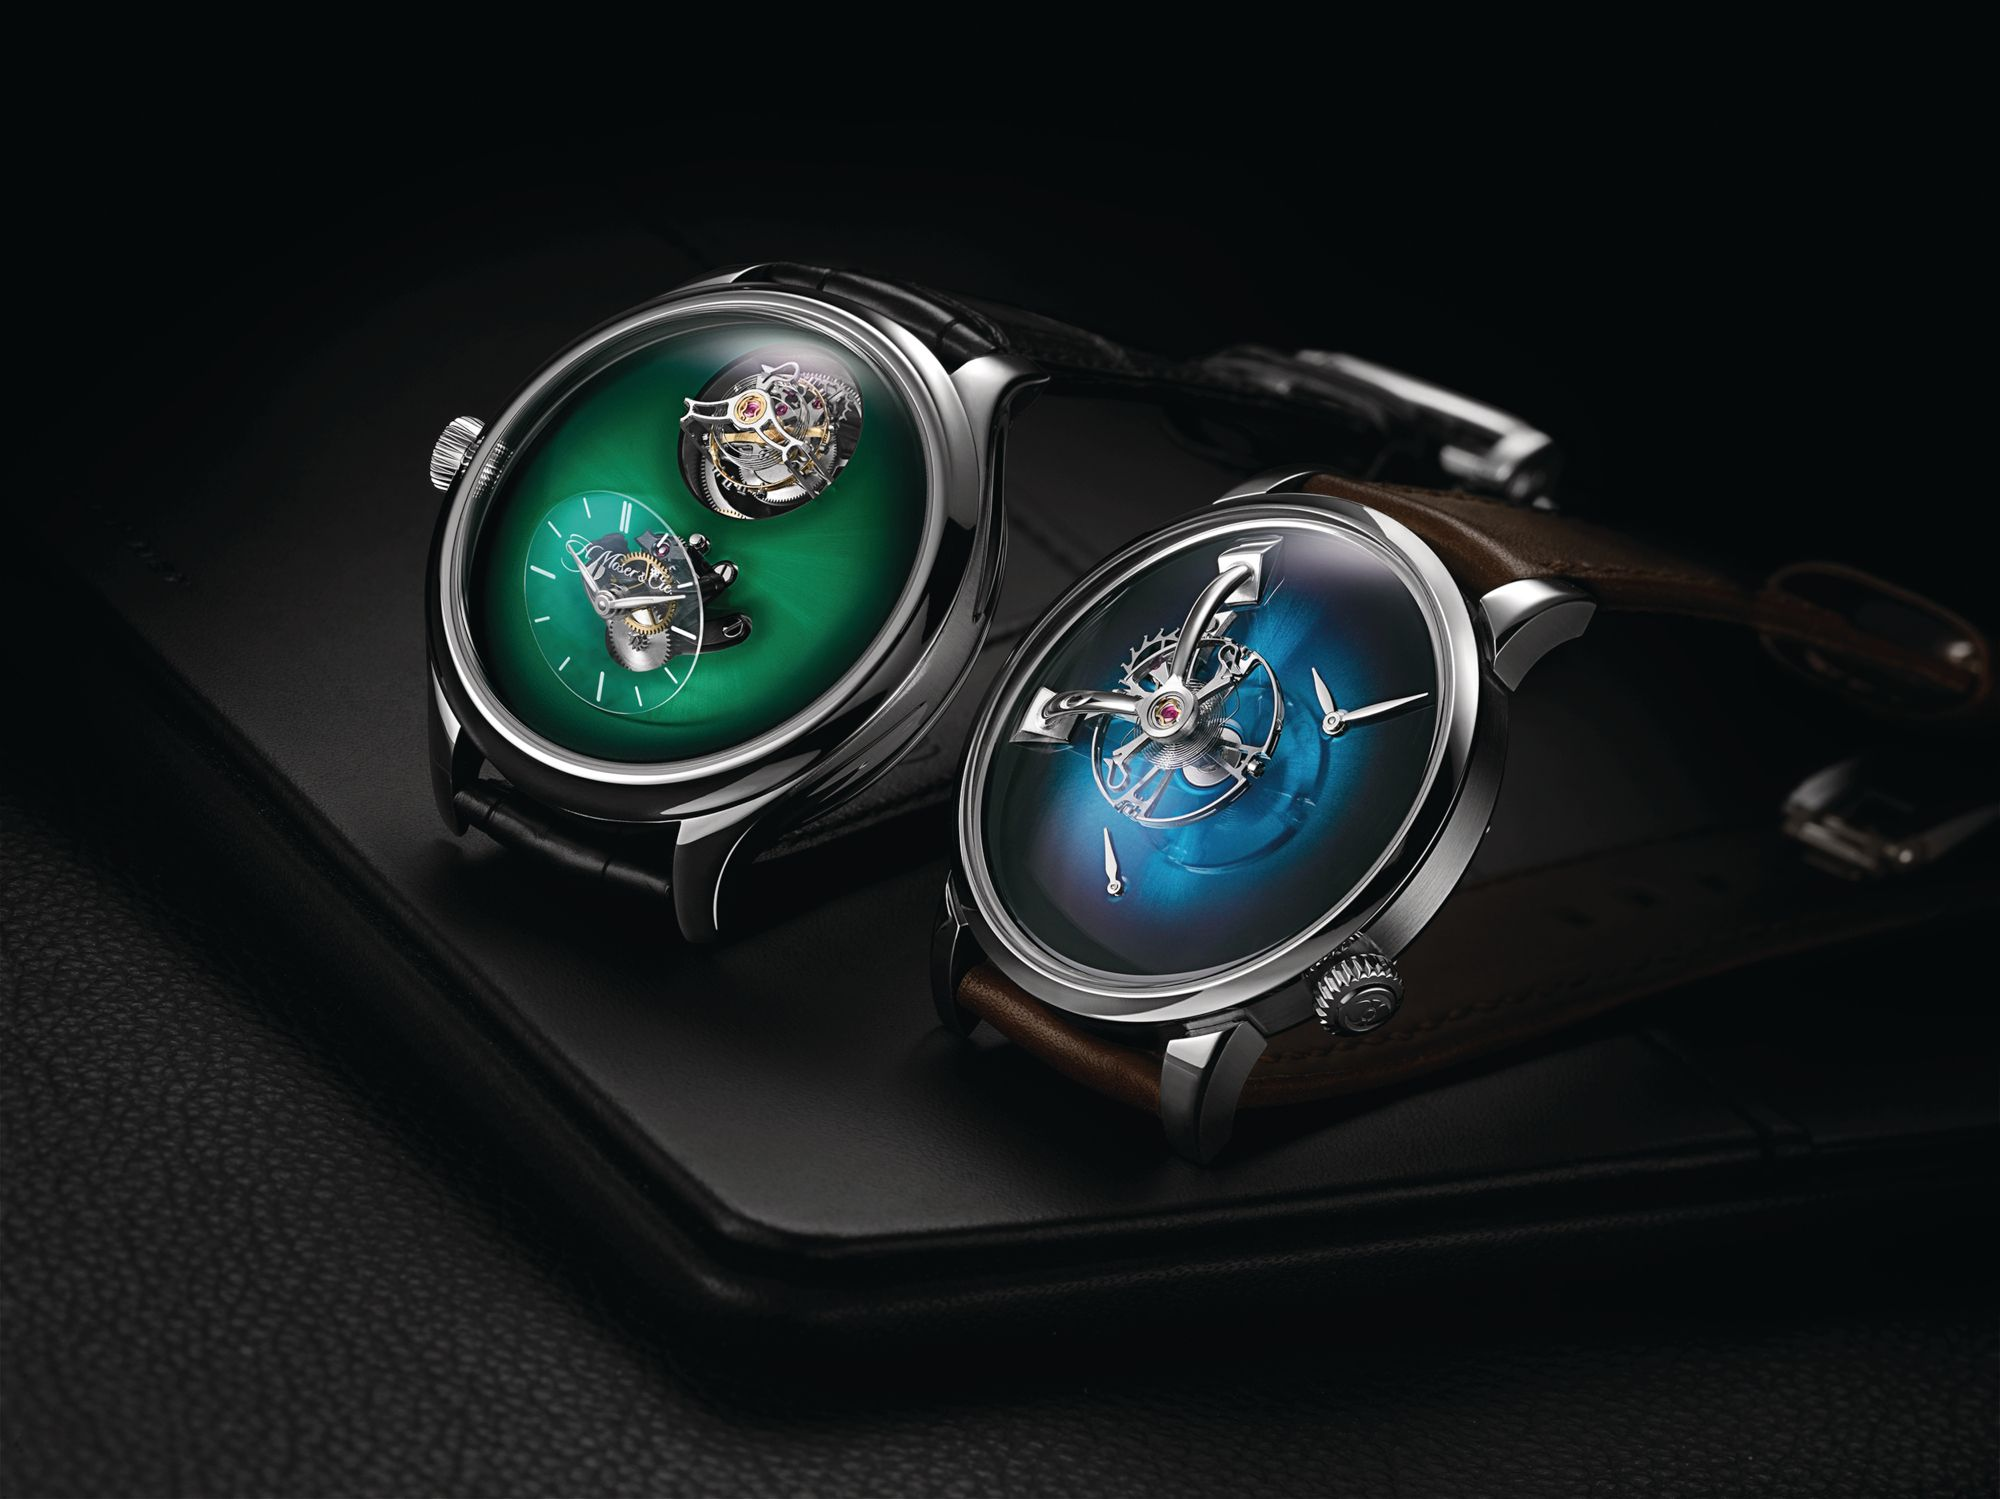 August 2020: What's New In Watches